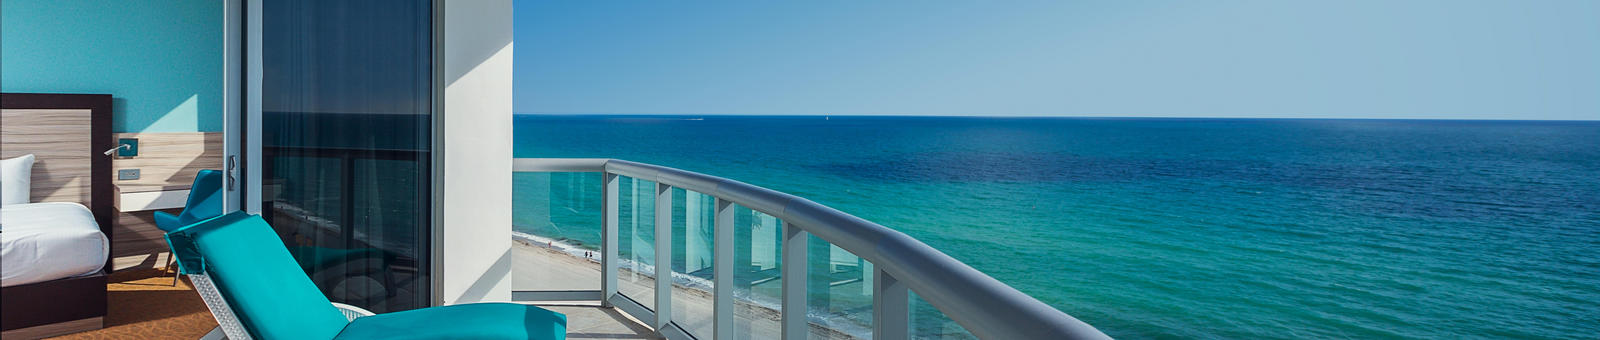 Oceanview Balcony at Marenas Beach Resort